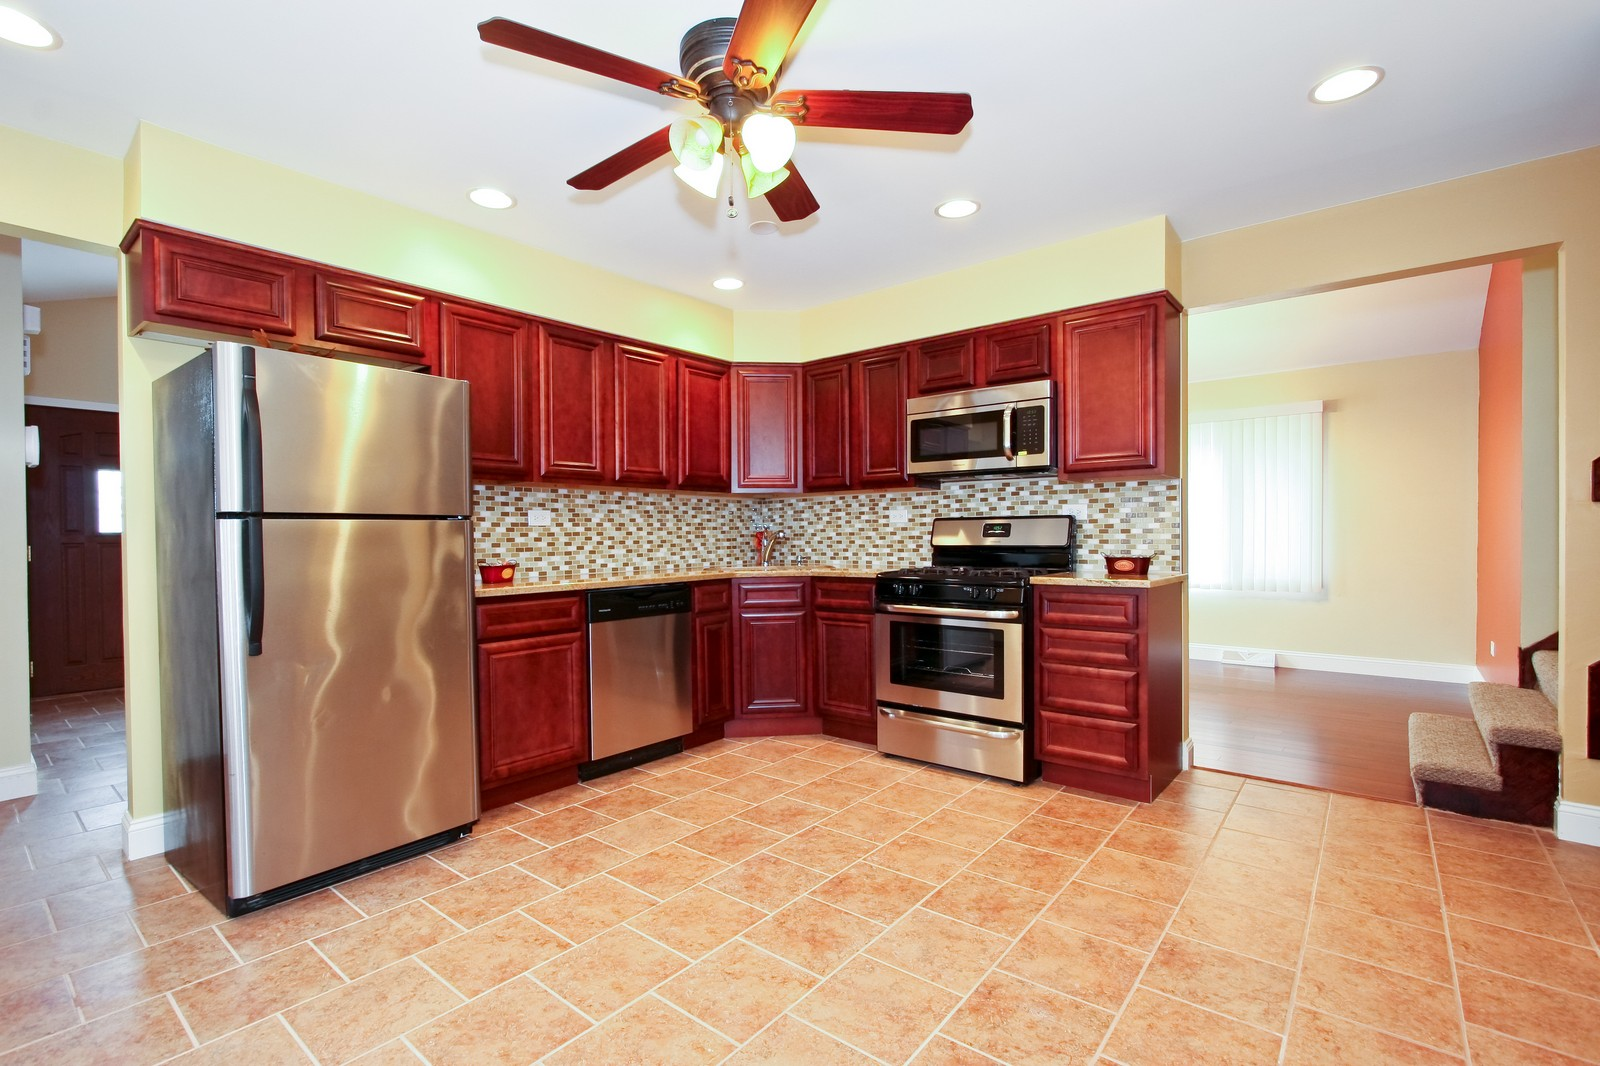 Real Estate Photography - 2728 W 91st St, Evergreen Park, IL, 60805 - Kitchen